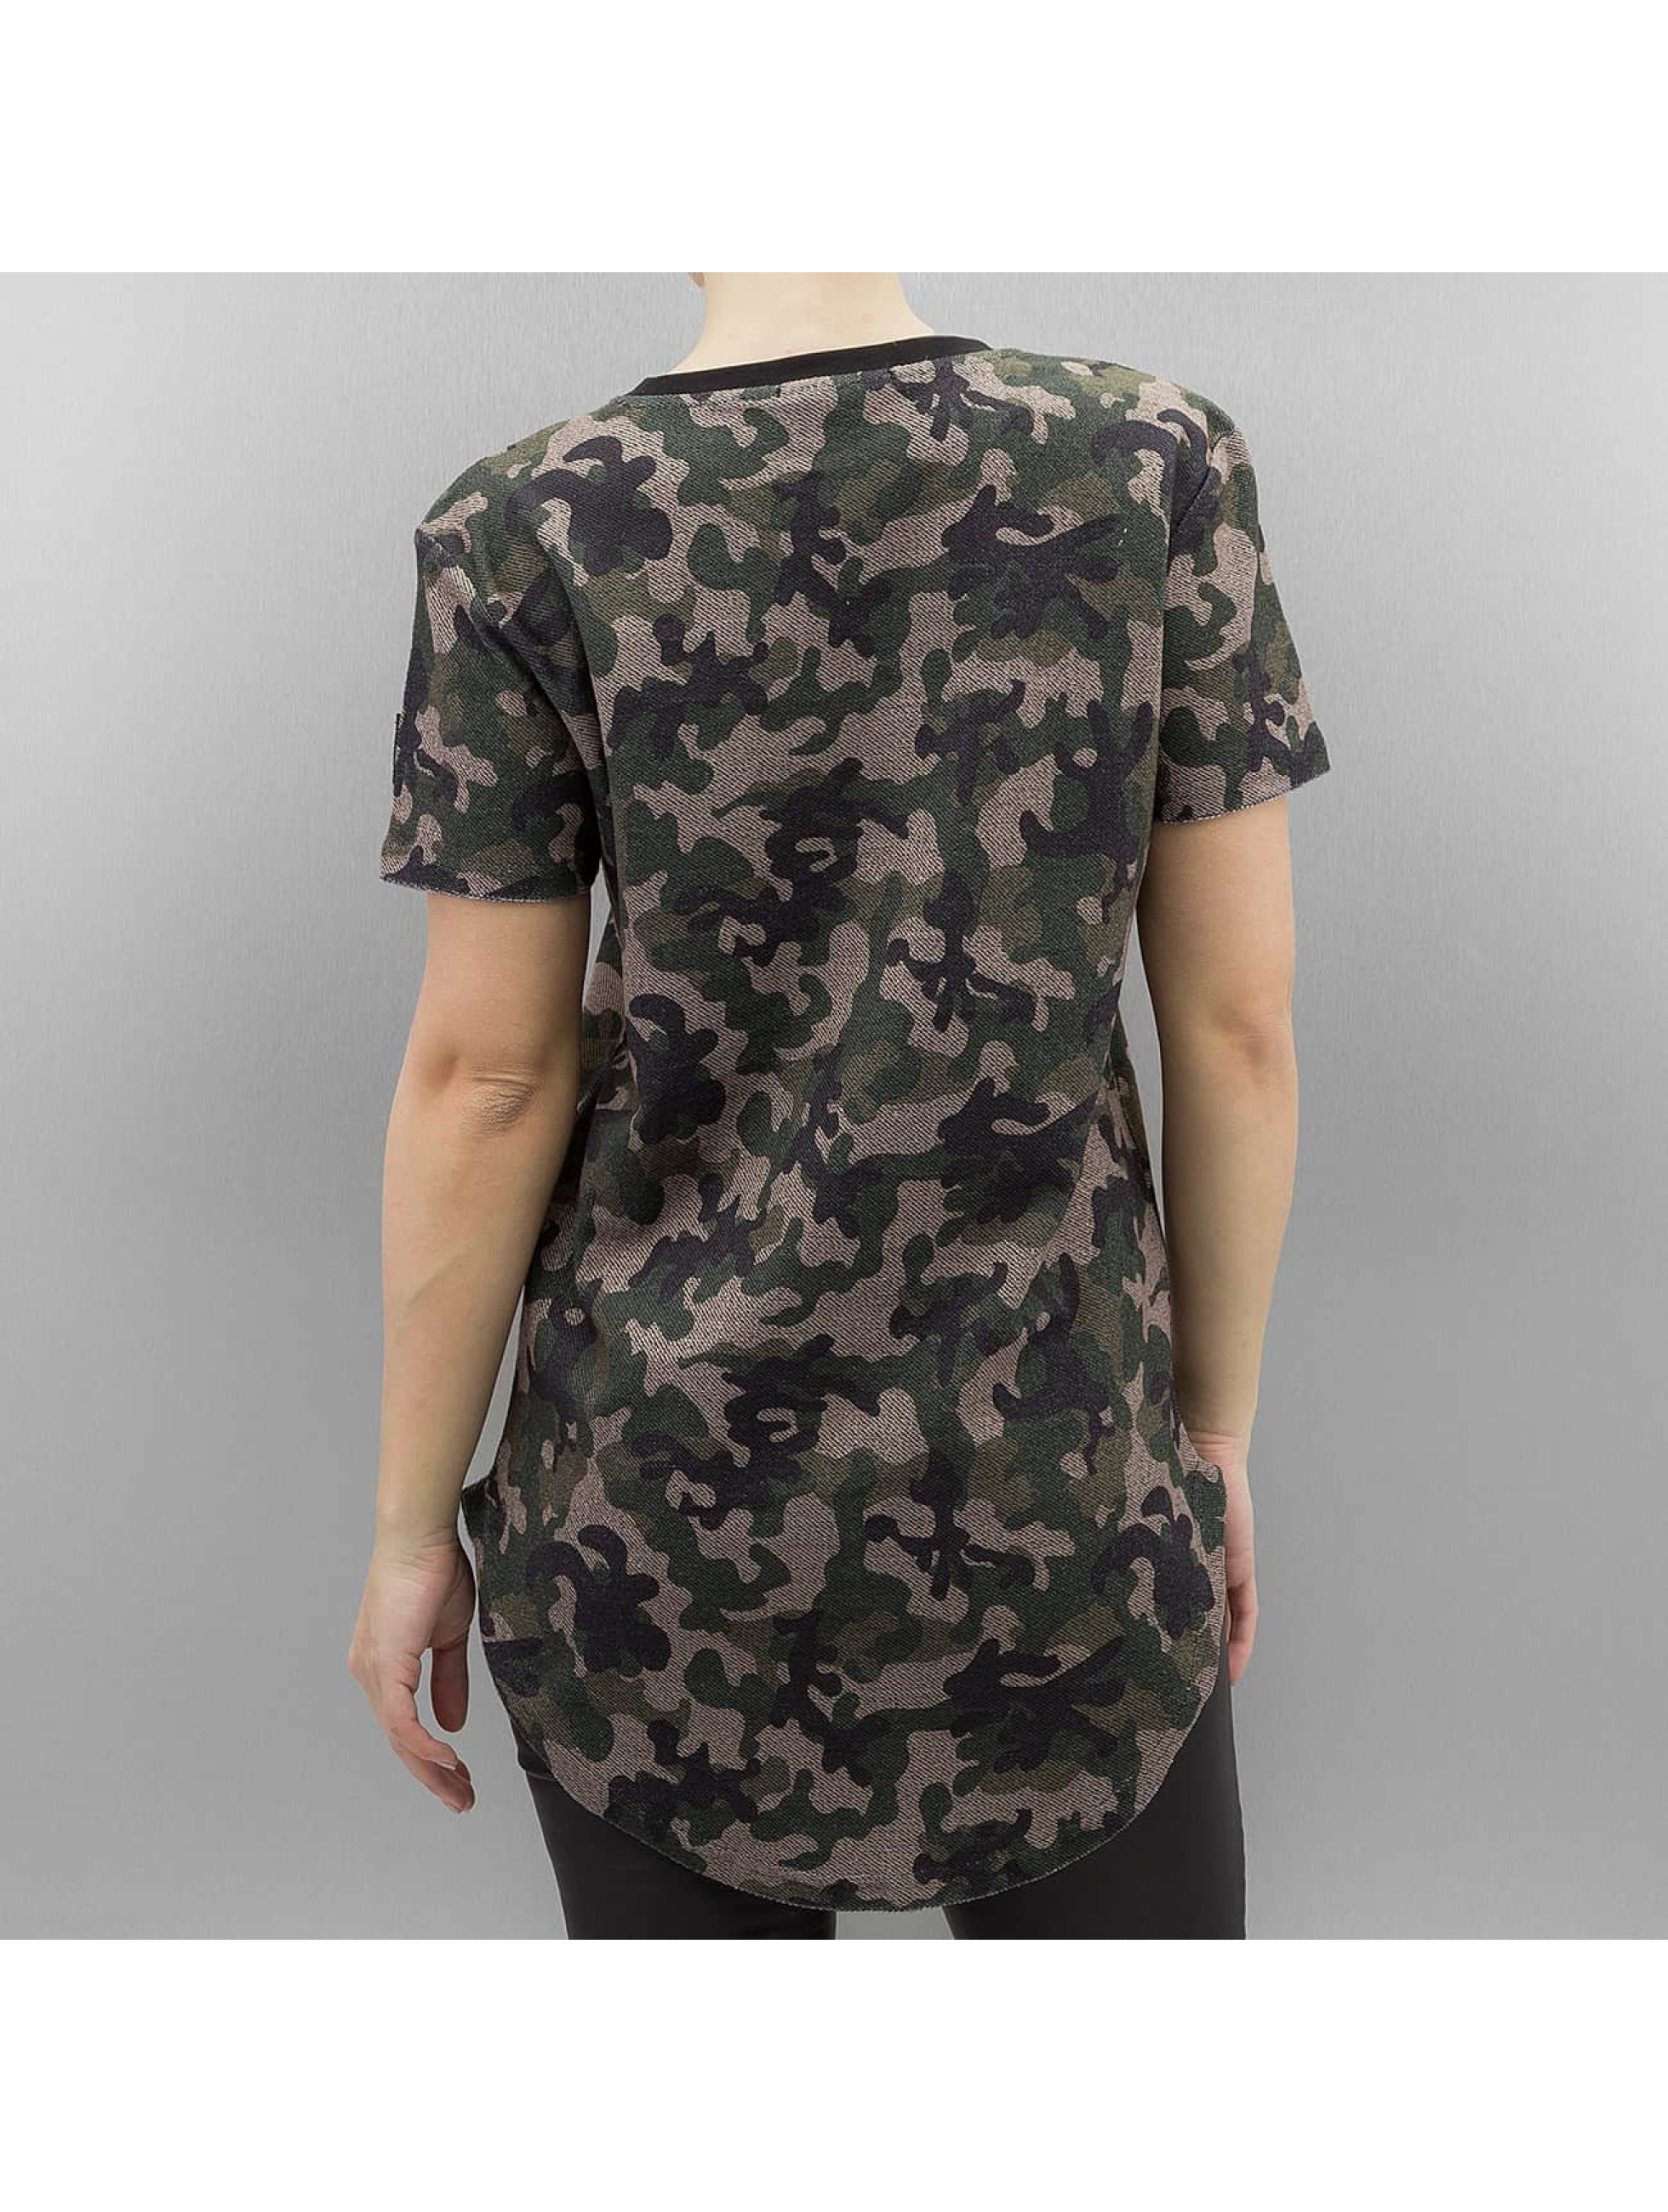 Paris Premium Tall Tees Atlanta camouflage